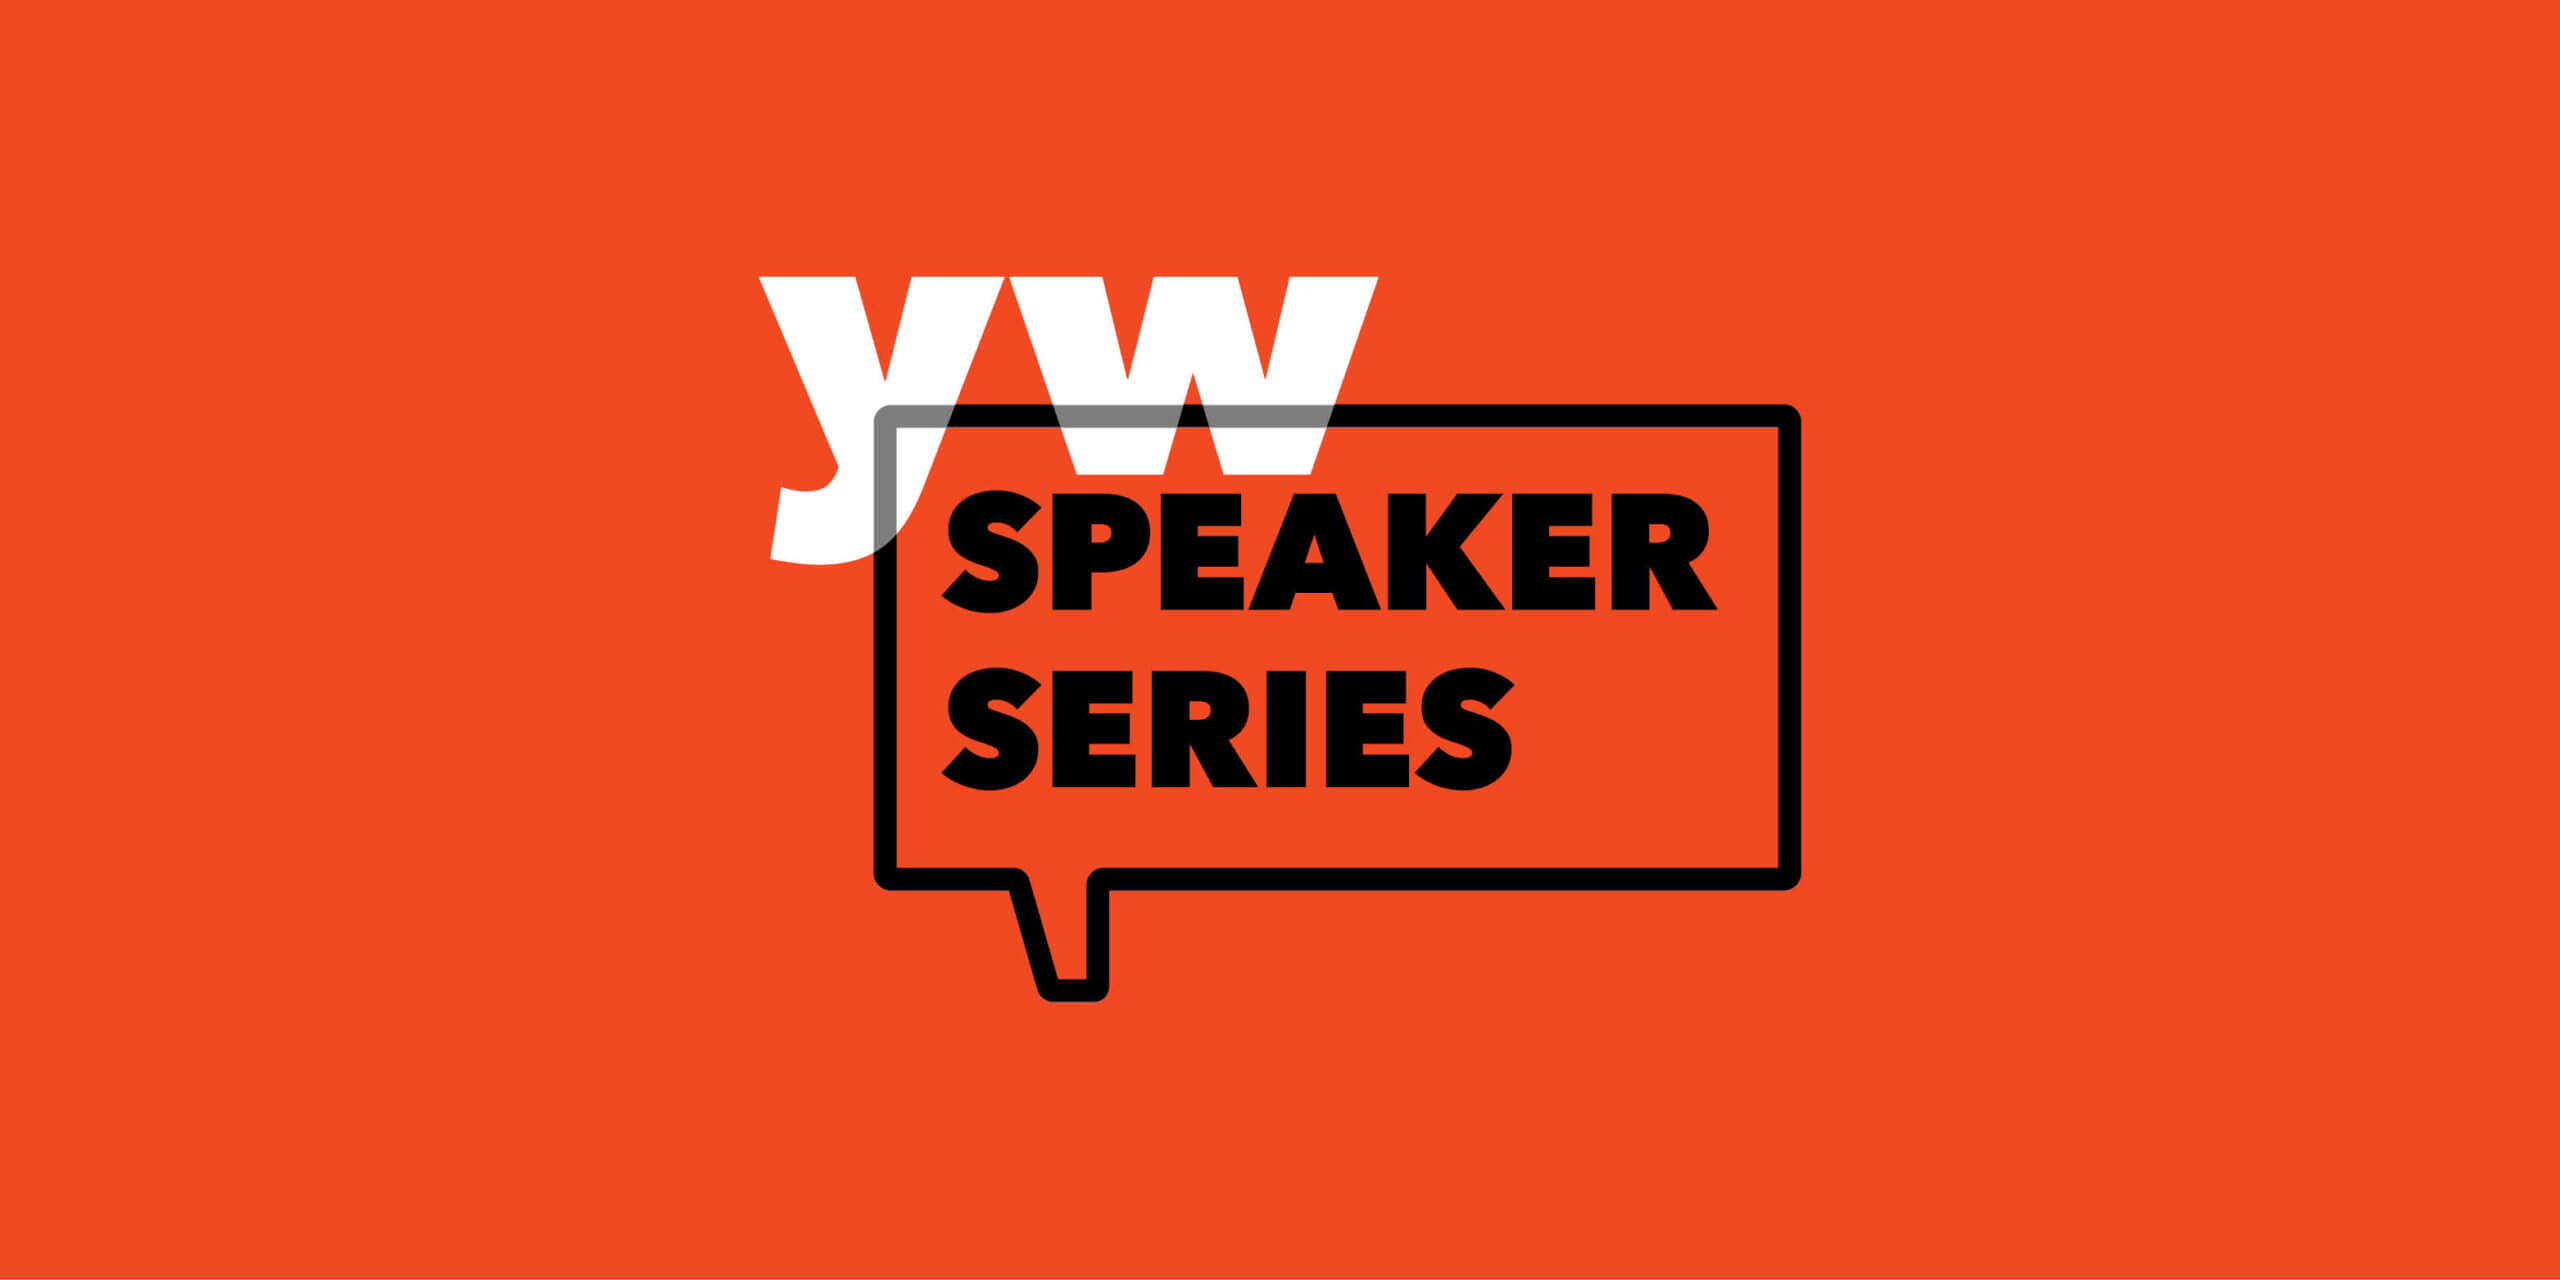 YW Speaker Series logo on a persimmon background